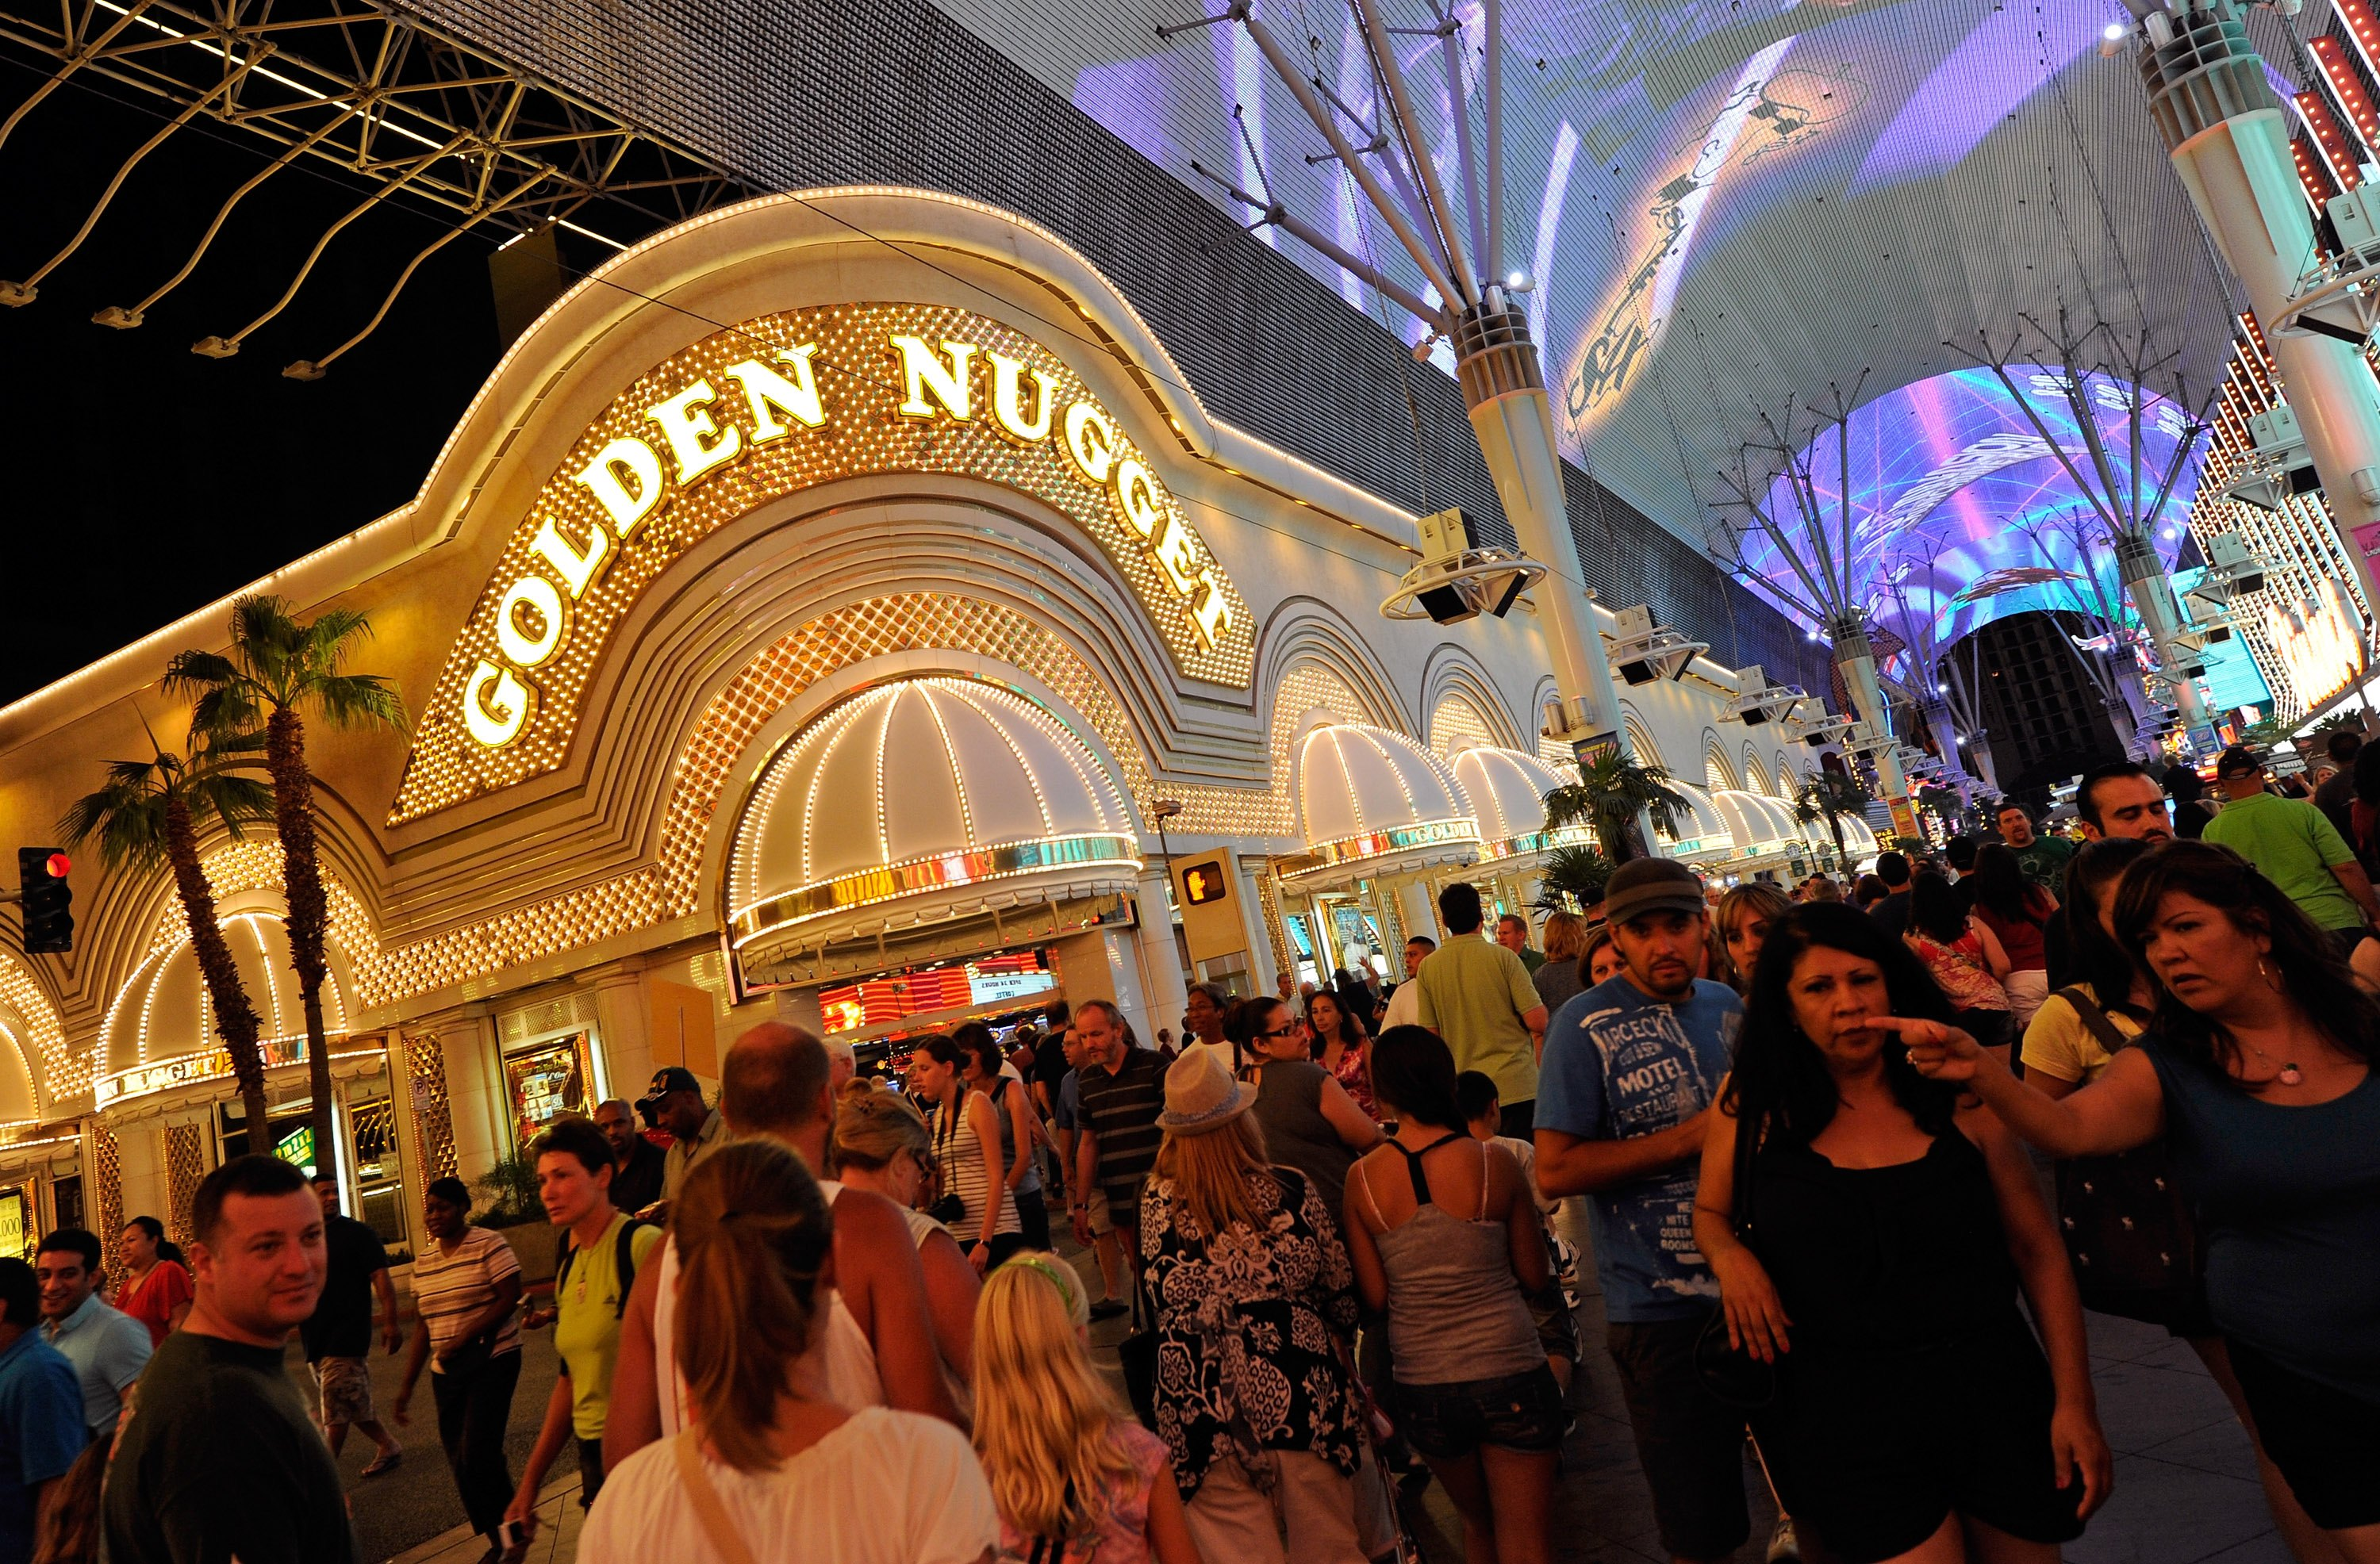 Golden Nugget Las Vegas Events